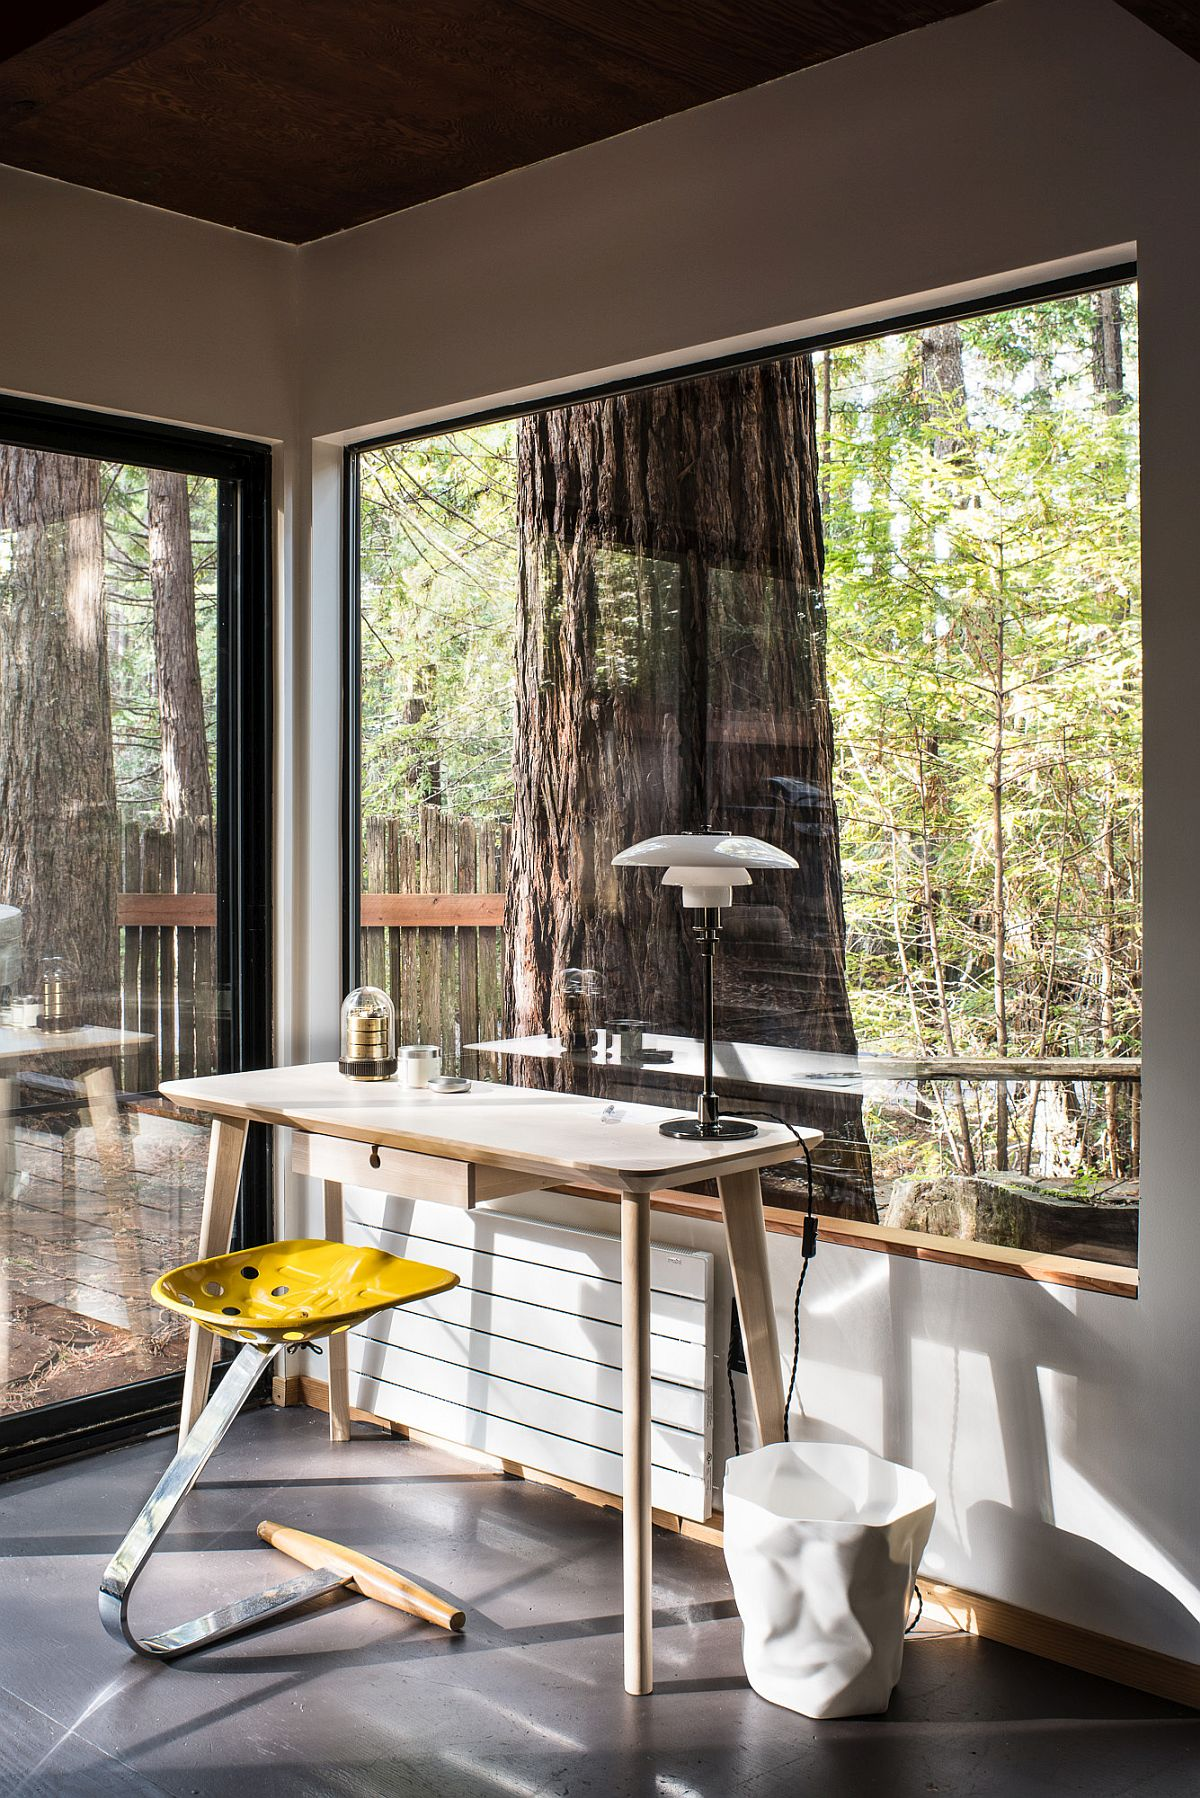 Beautiful work area of the cabin with forest view outside